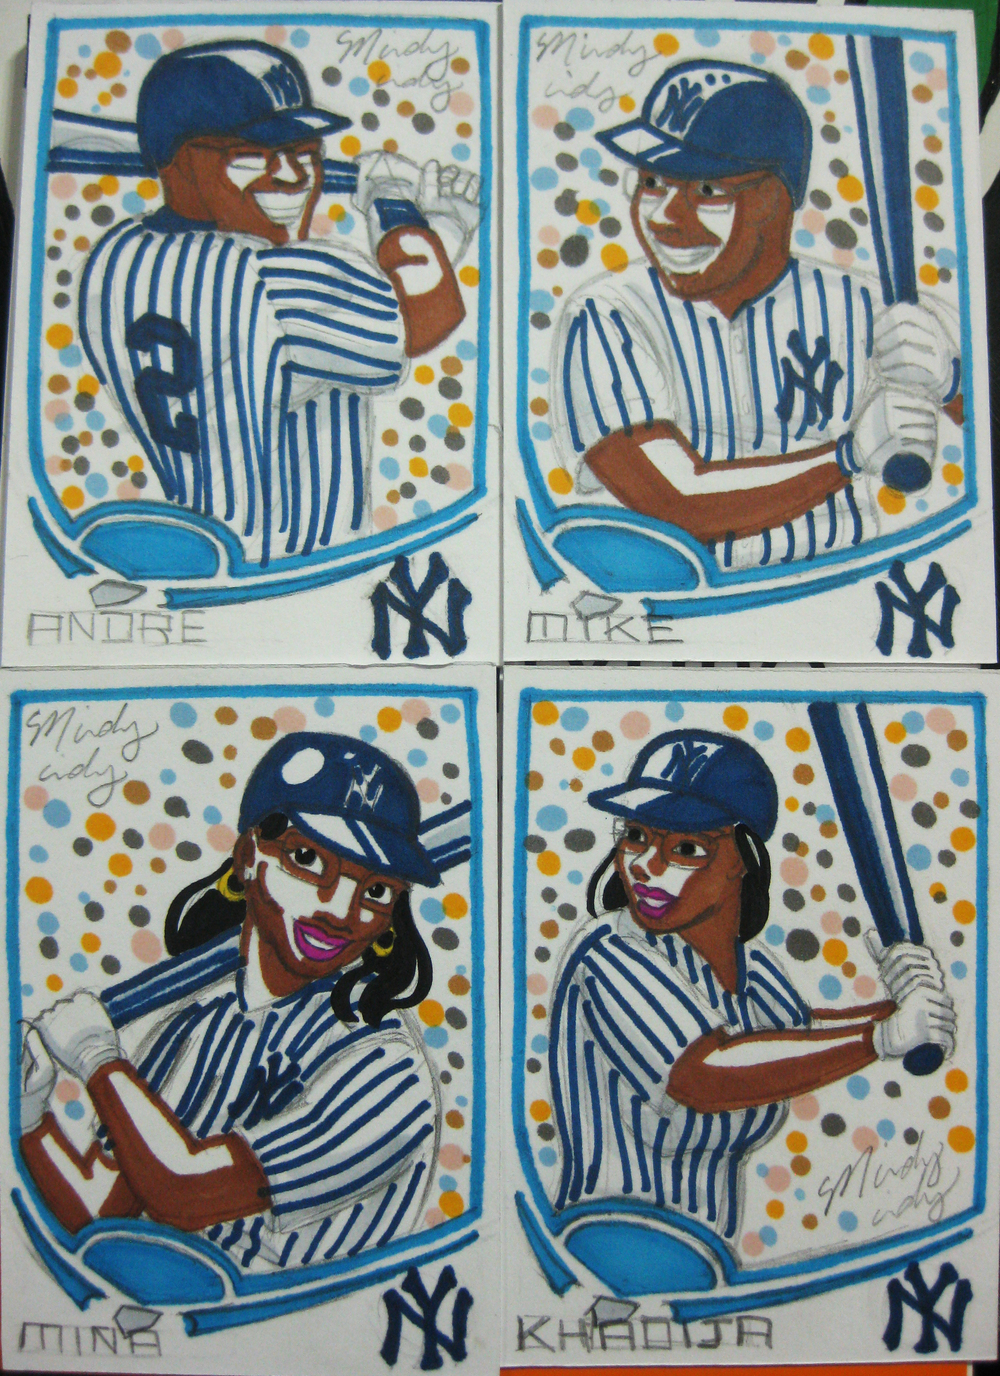 A clever gift!  One guy wanted all his siblings as Yankees players on baseball cards.  The small size is just perfect for ball cards!  I probably spent way too much time on these, but hey they turned out great.